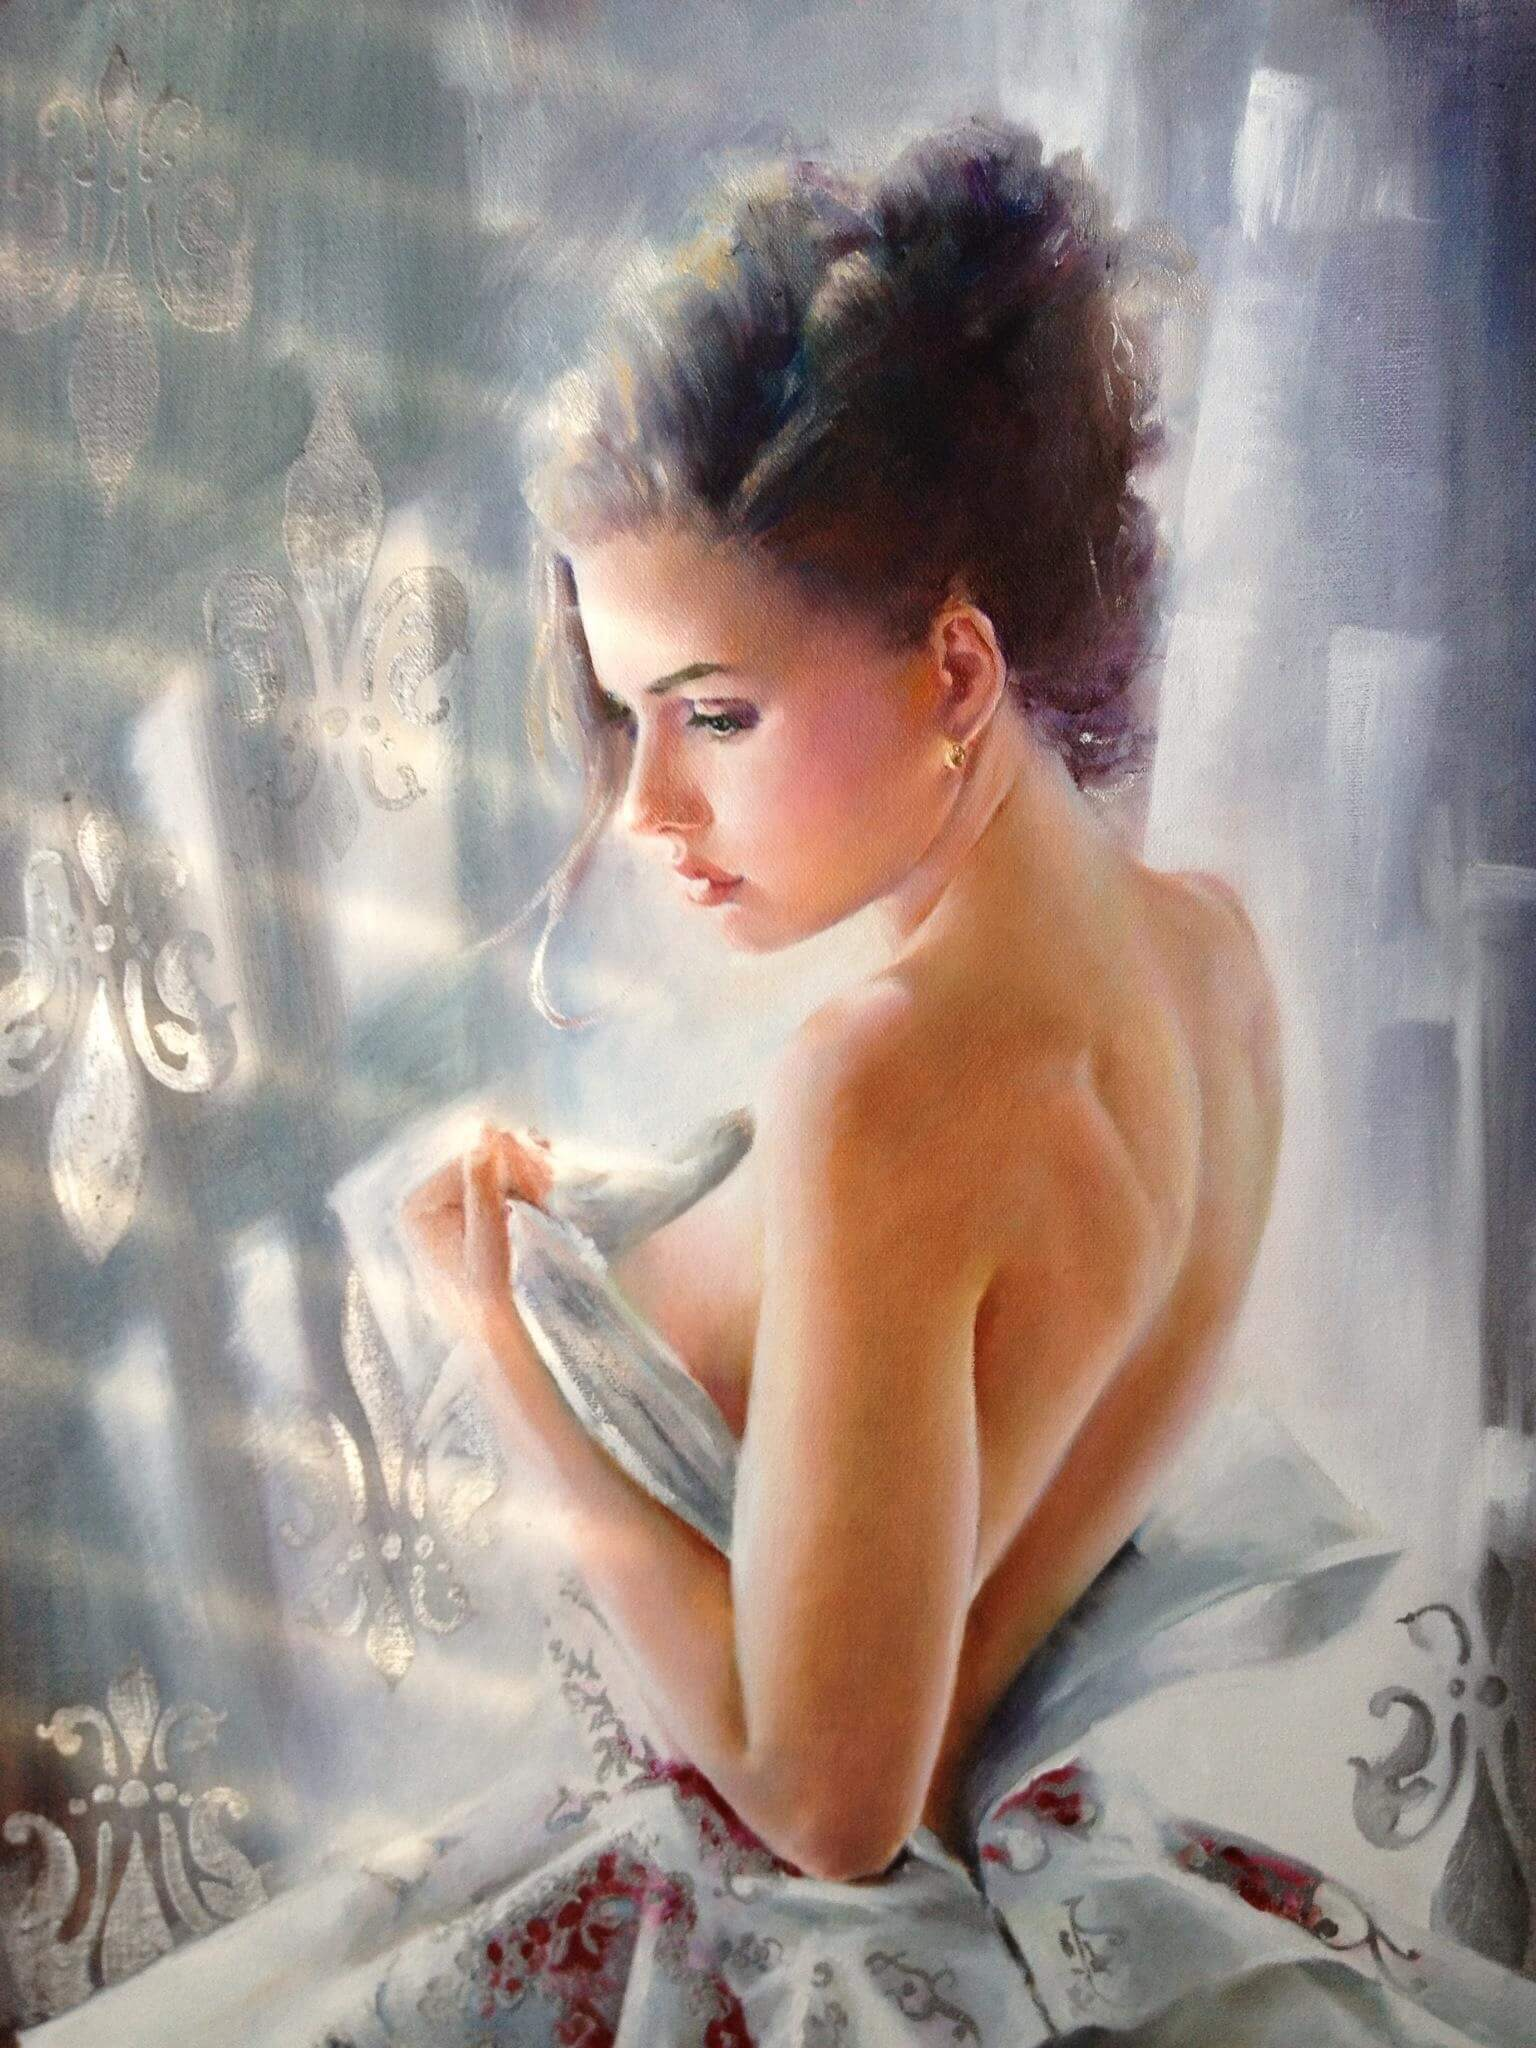 Inspirational Oil Painting Artwork entitled Morning Snowflake, by Artist Olga Duk